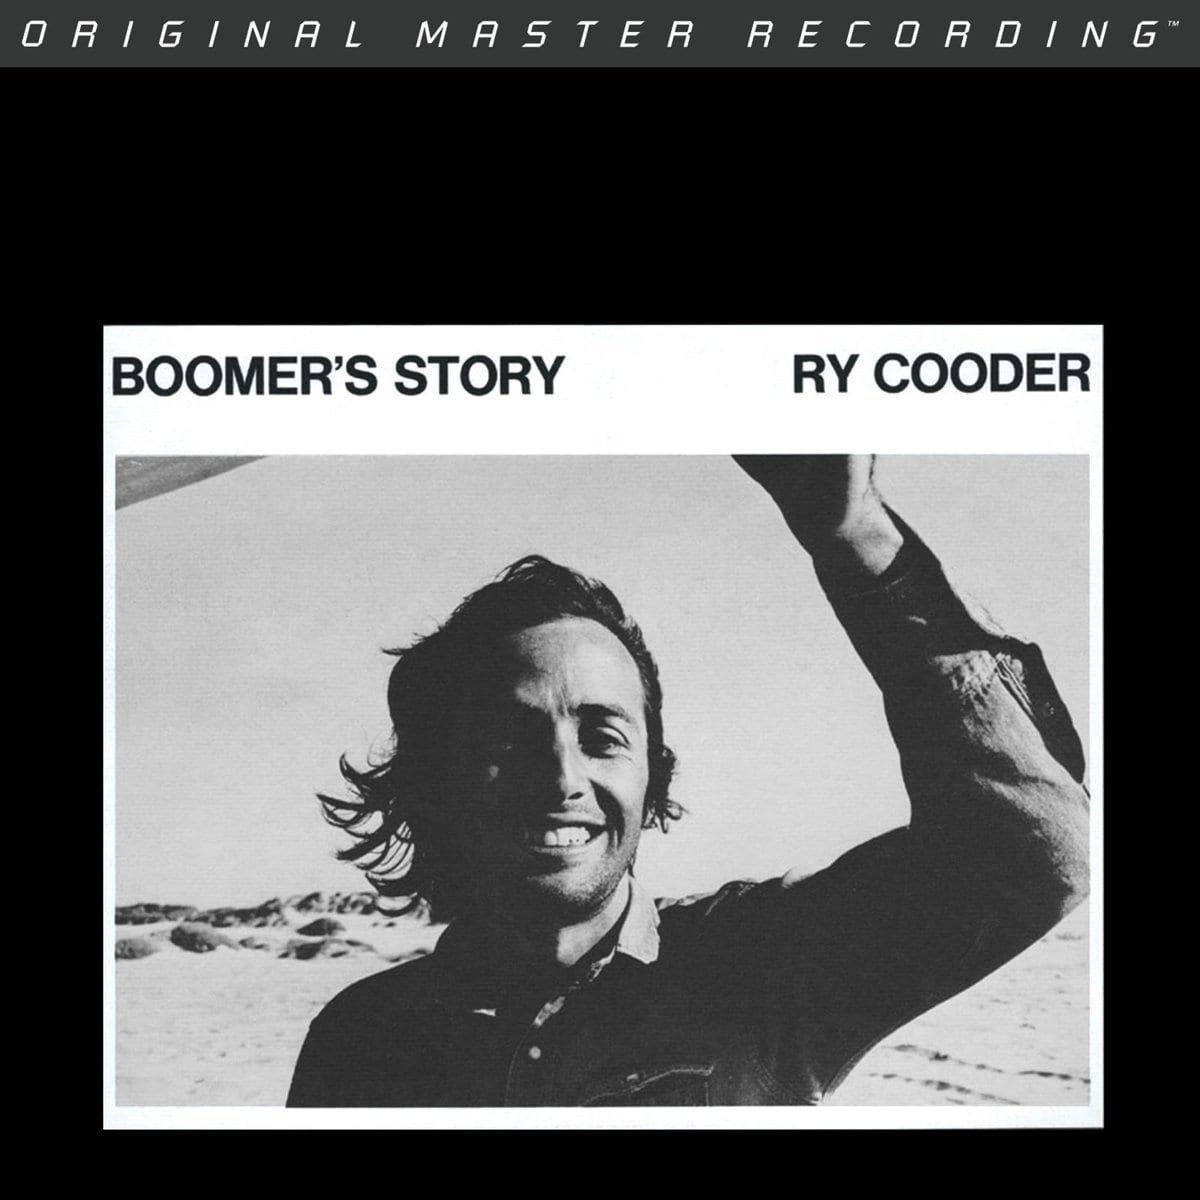 Ry Cooder - Boomer's Story [LP] (180 Gram Audiophile Vinyl, limited/numbered to 3000) - Urban Vinyl | Records, Headphones, and more.